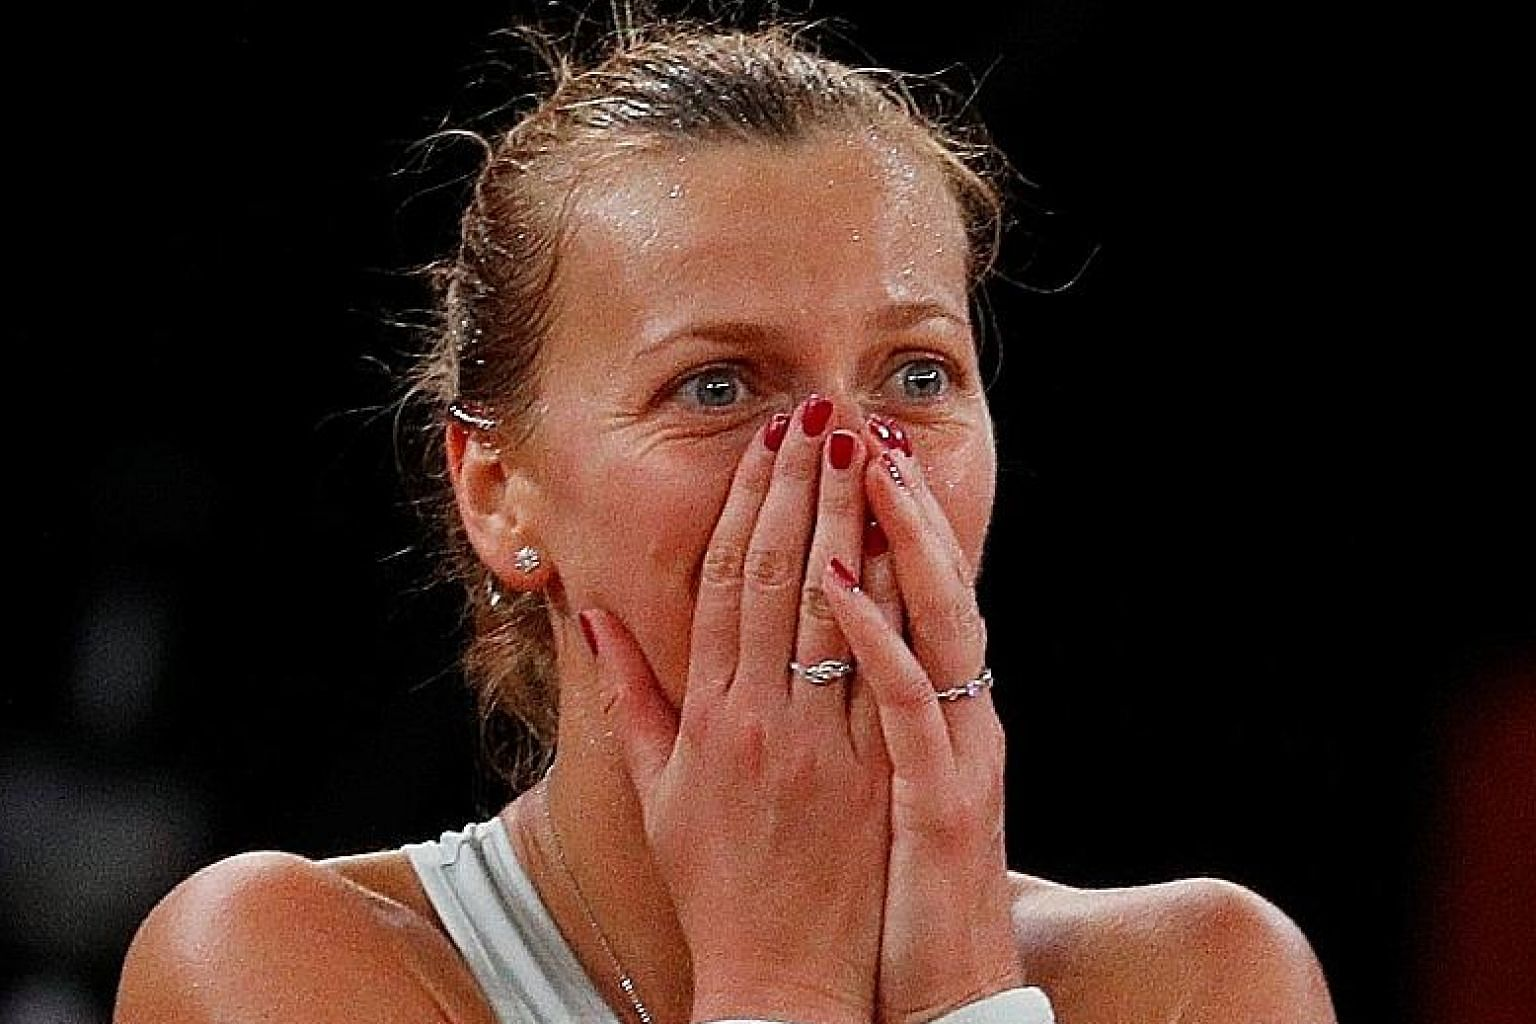 An overjoyed Czech tennis star Petra Kvitova after beating the Netherlands' Kiki Bertens in the Madrid Open final on May 12.